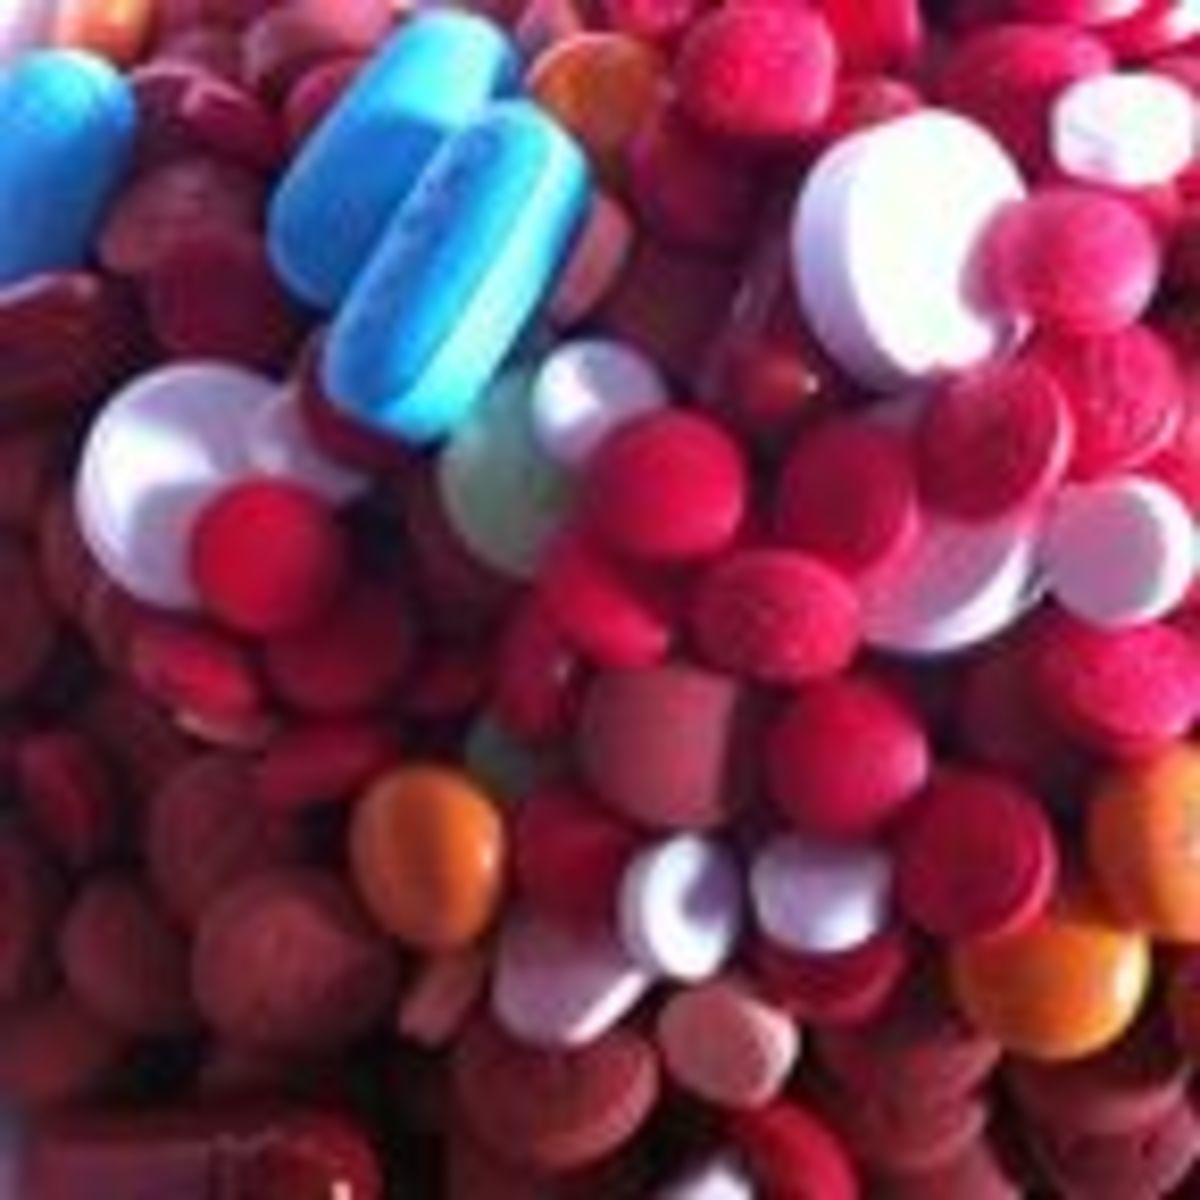 Do You Suffer From Emotional Pain or Anxiety? Pop a Tylenol